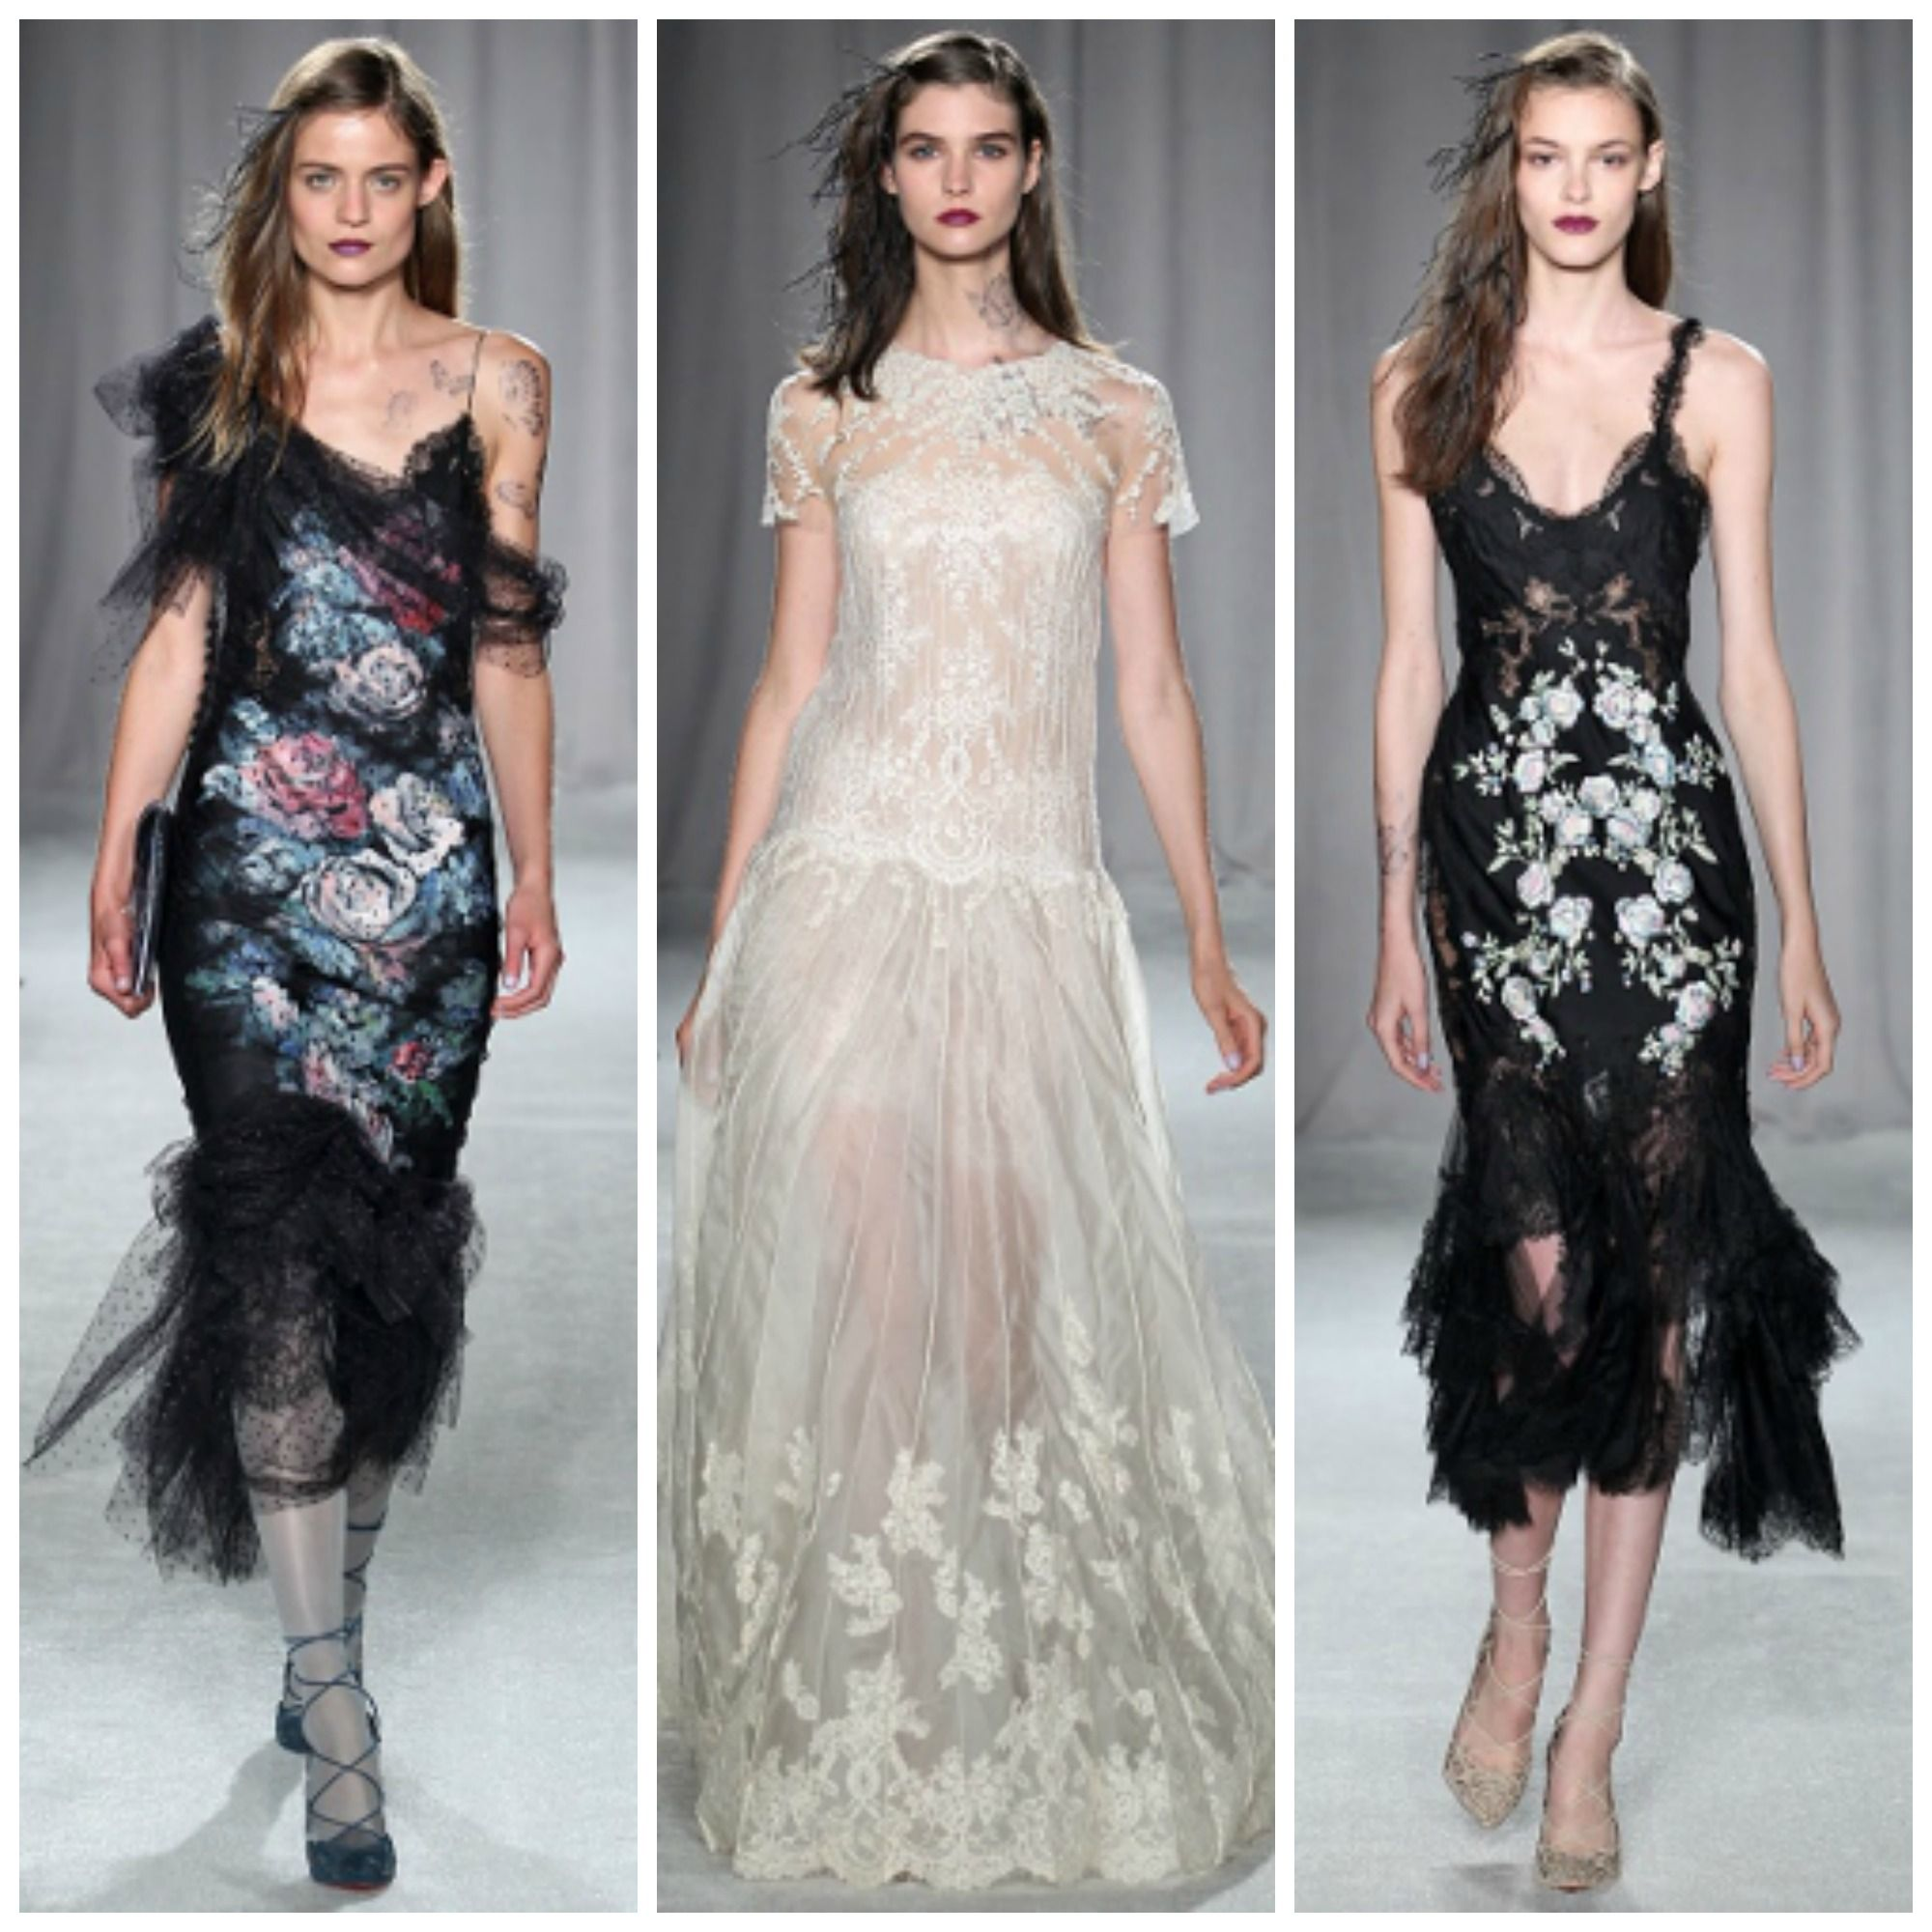 Going somewhere black-tie? Get inspired by Marchesa #Spring2014 now at:  http://www.focusonstyle.com/fashion-shows/spring-2014-fashion/page/2/